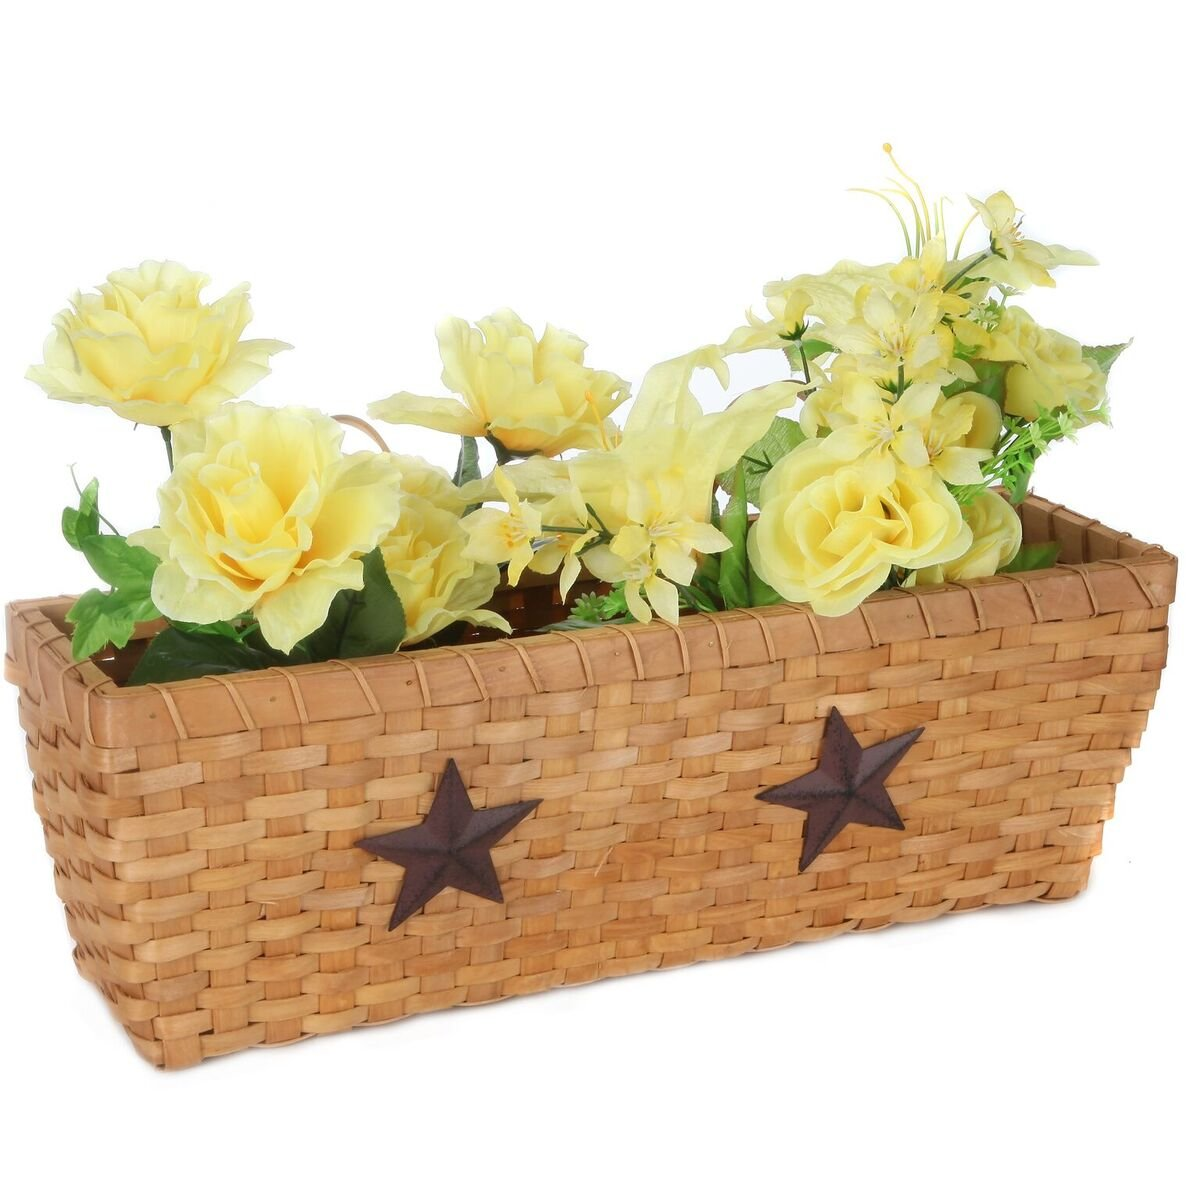 Trenton Gifts Versatile Woven Wood Country Wall Basket With 2 Stars | Strong and Lightweight